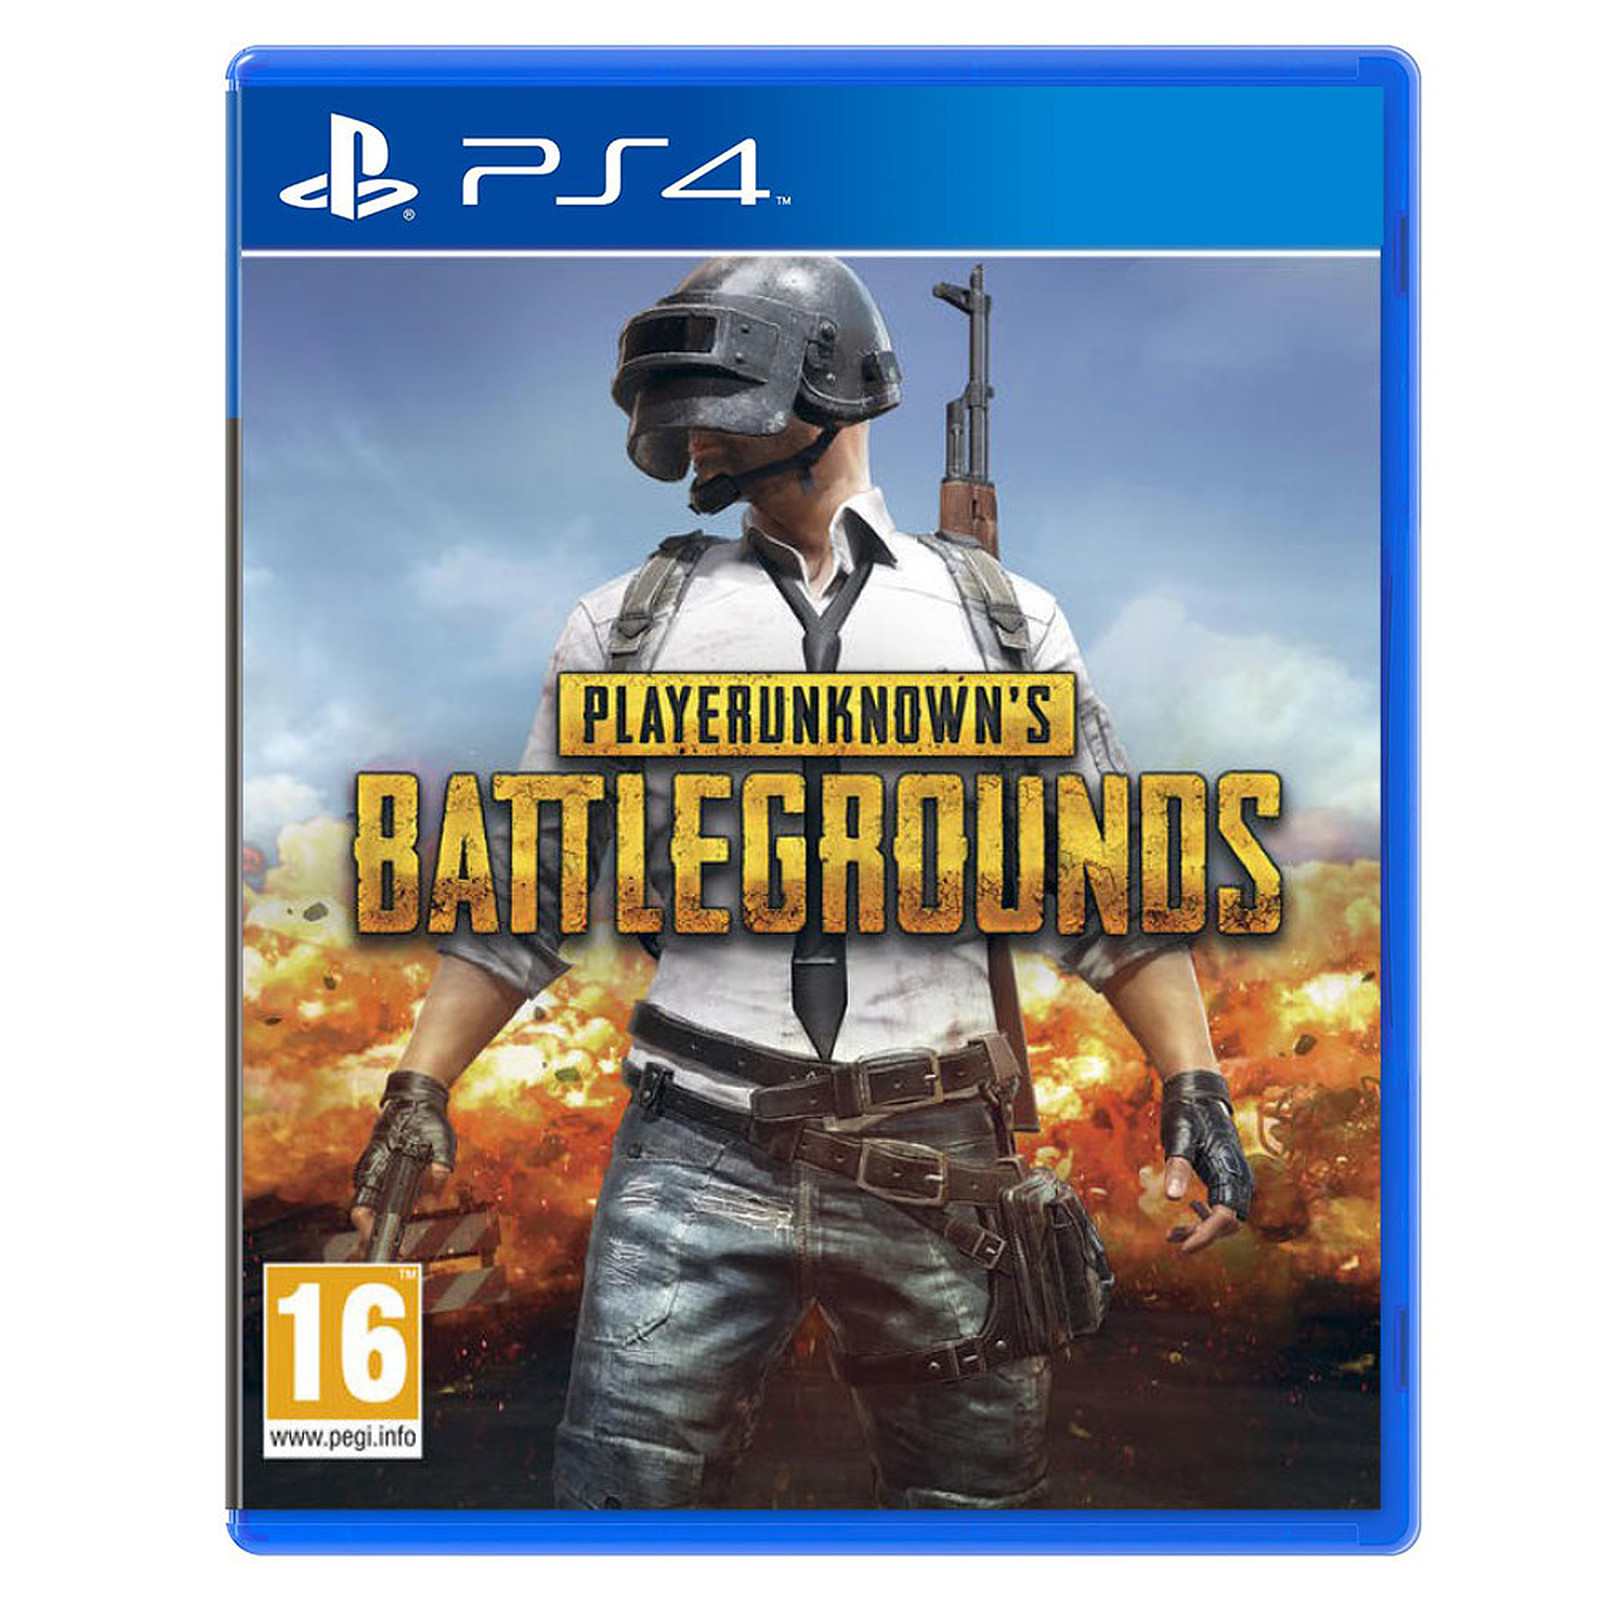 PLAYERUNKNOWN'S BATTLEGROUNDS (PlayStation 4)